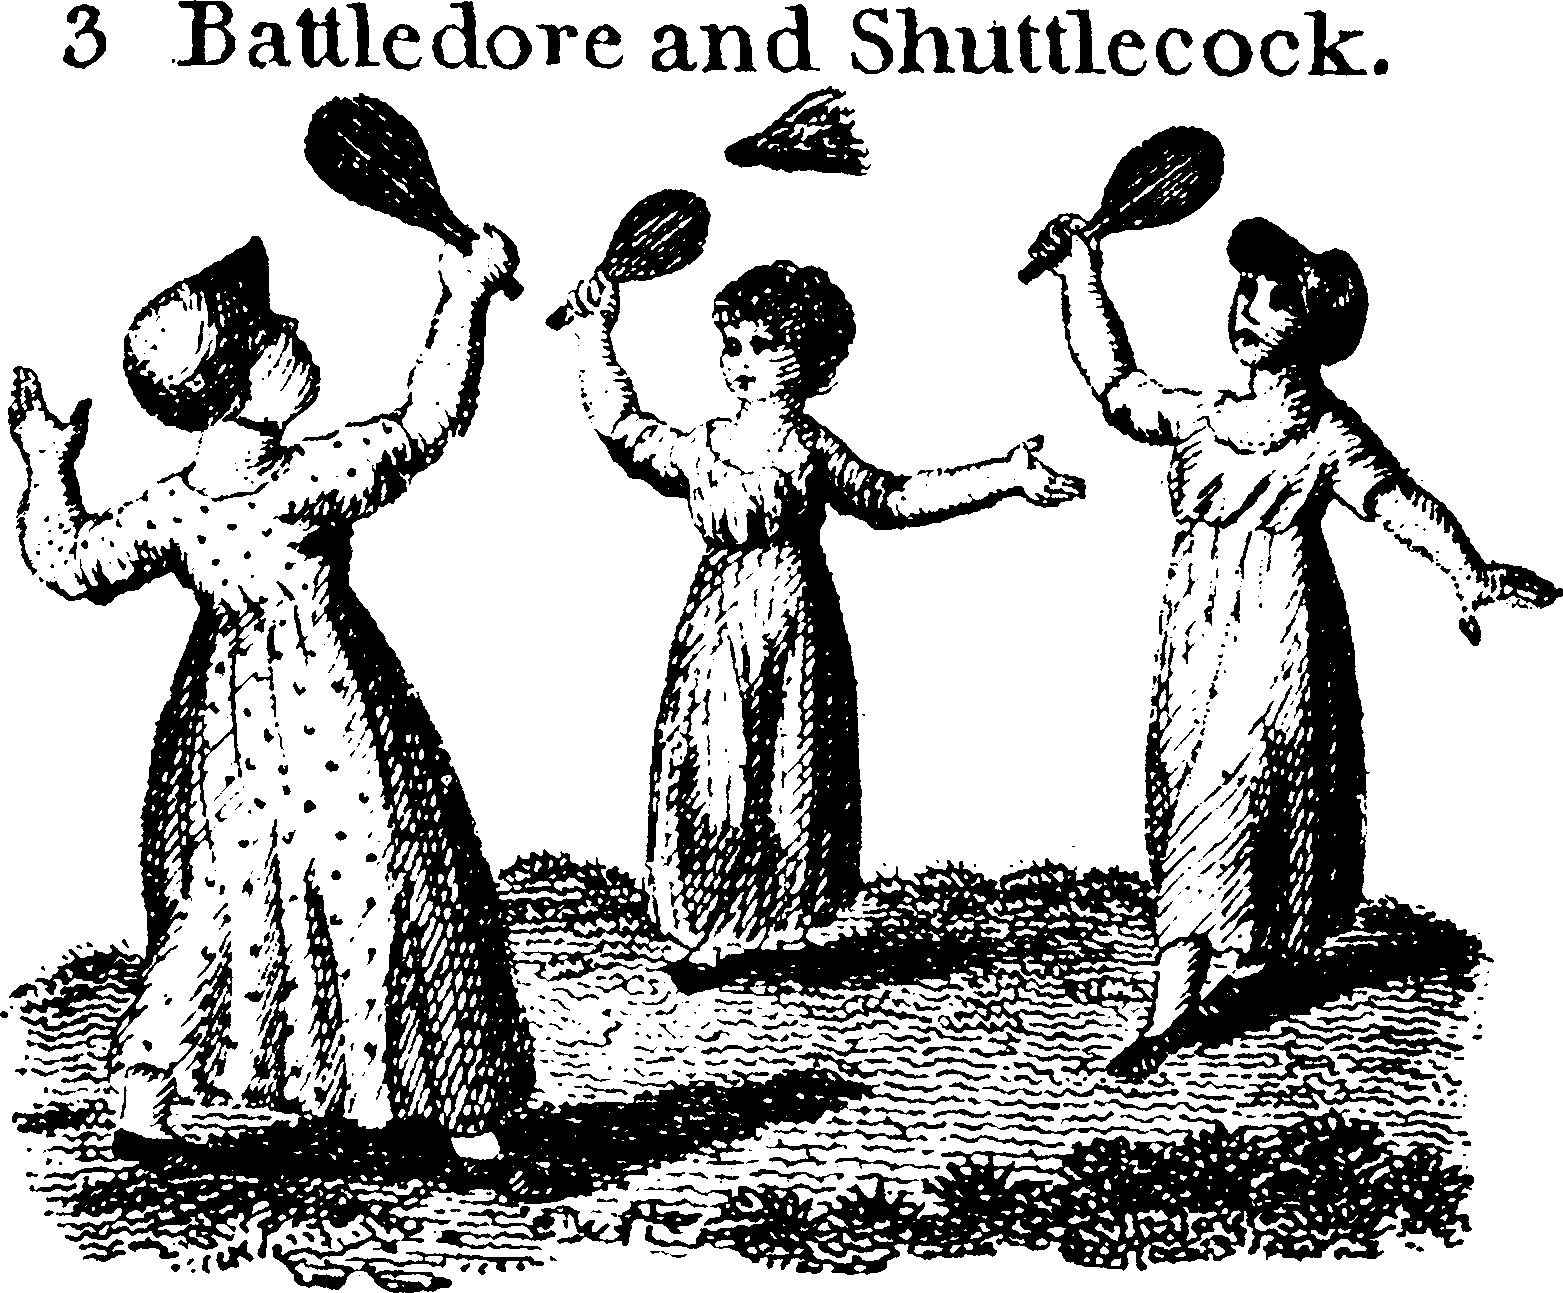 http://upload.wikimedia.org/wikipedia/commons/archive/d/df/20060223174003!Battledore_-_Youthful_Sports.png